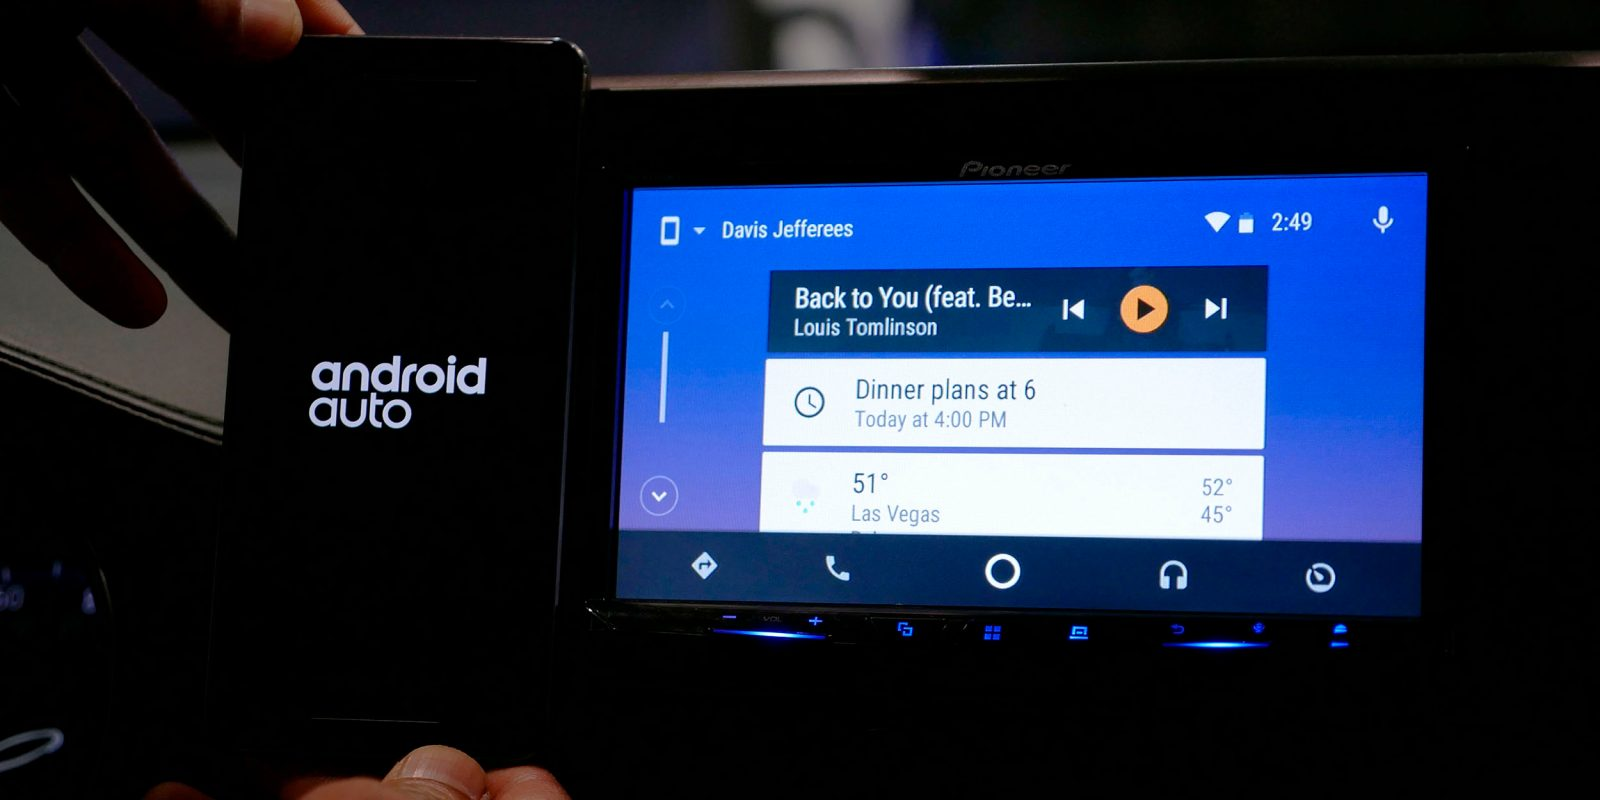 Google adds Wi-Fi projection to Android Auto app for 'Android Auto